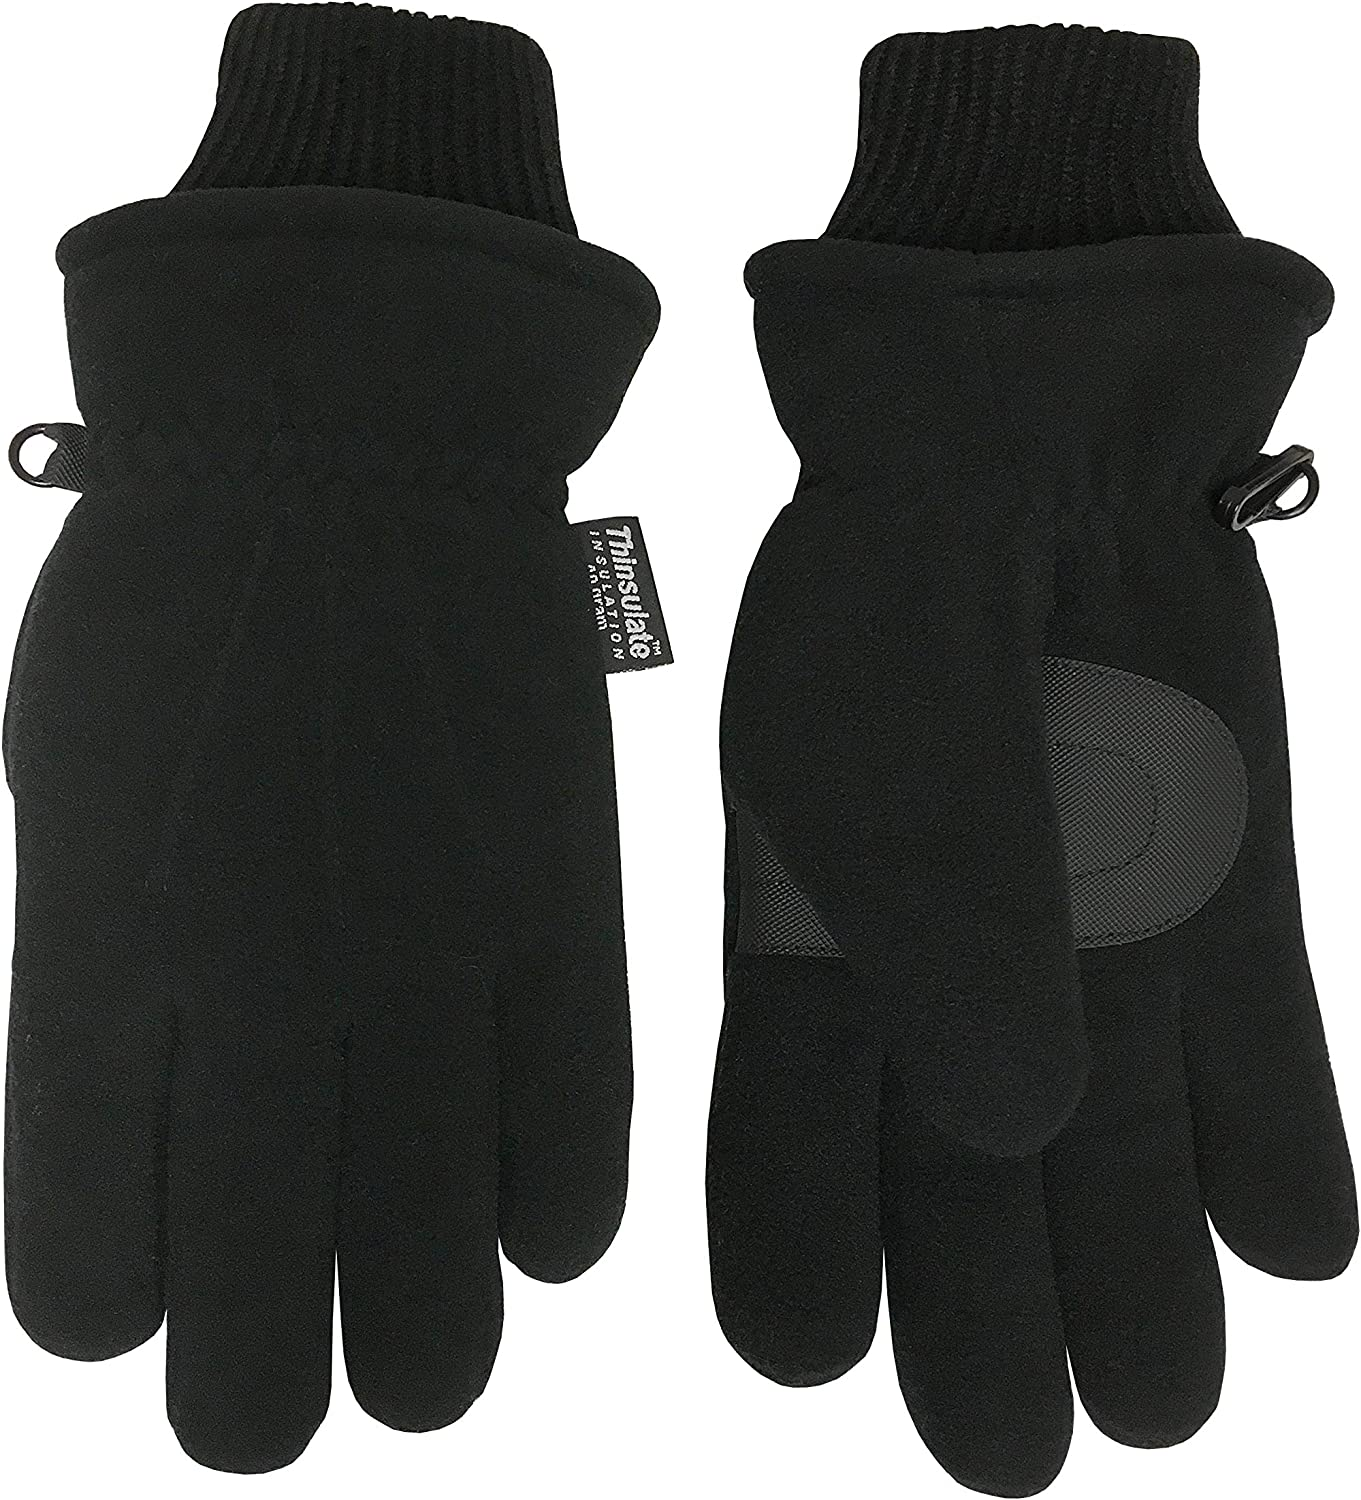 Broner Ladies Fleece Glove with a Knit Wrist, Palm Patch and Thinsulate Insulation